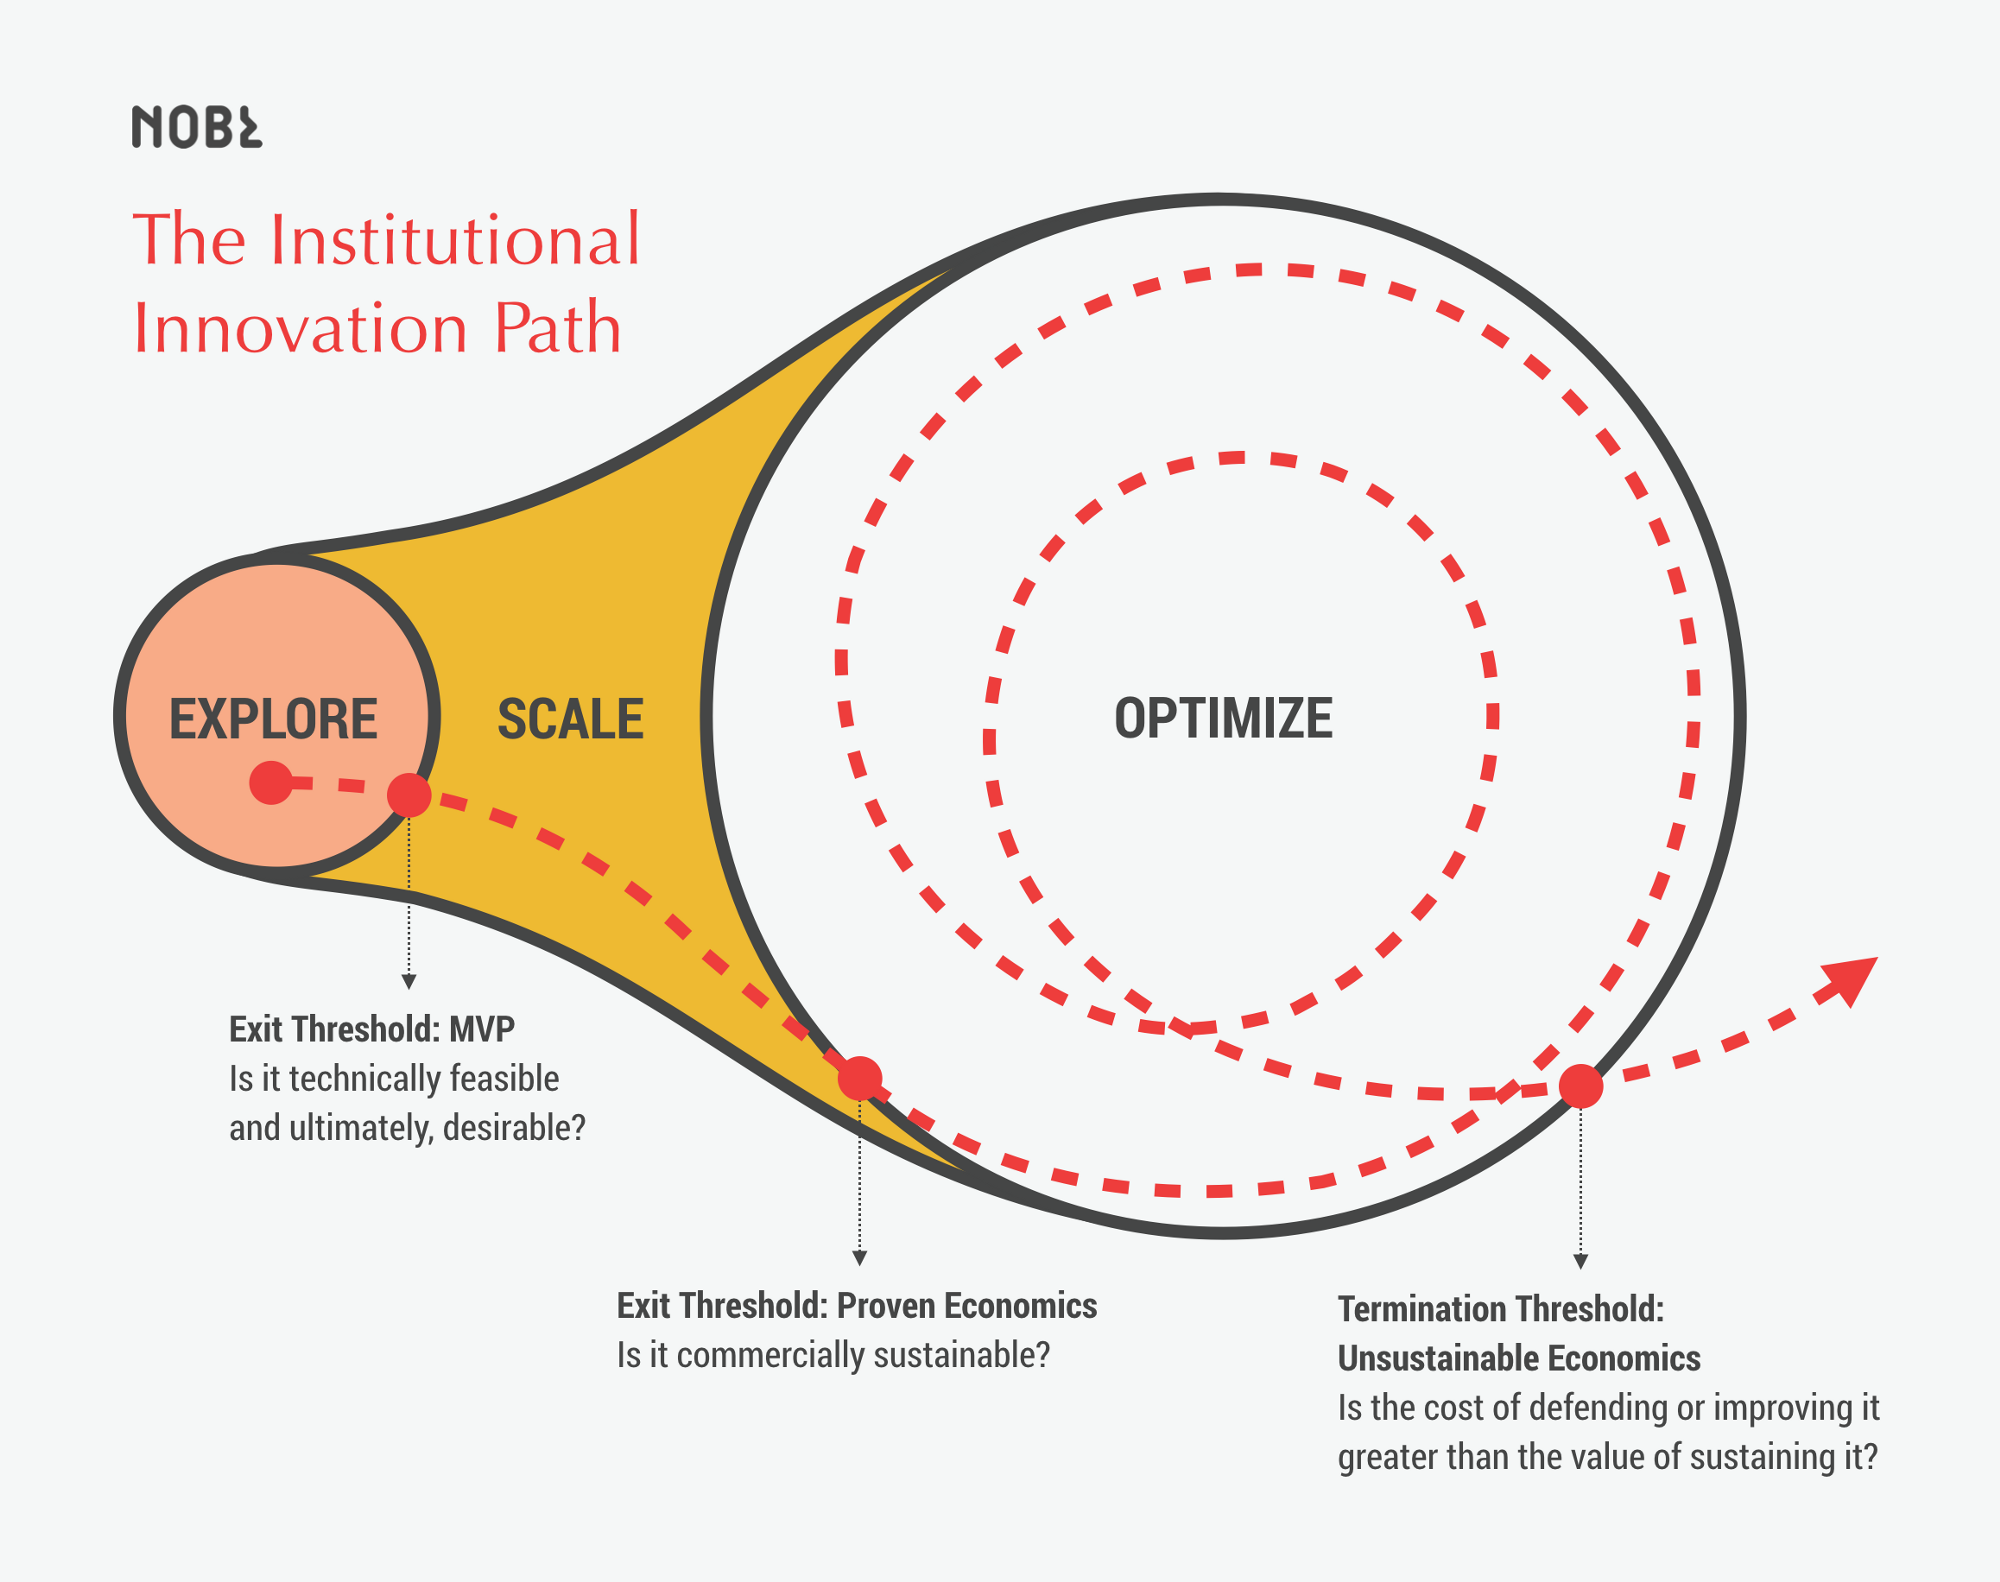 What Every Institutional Innovation Program Gets Wrong